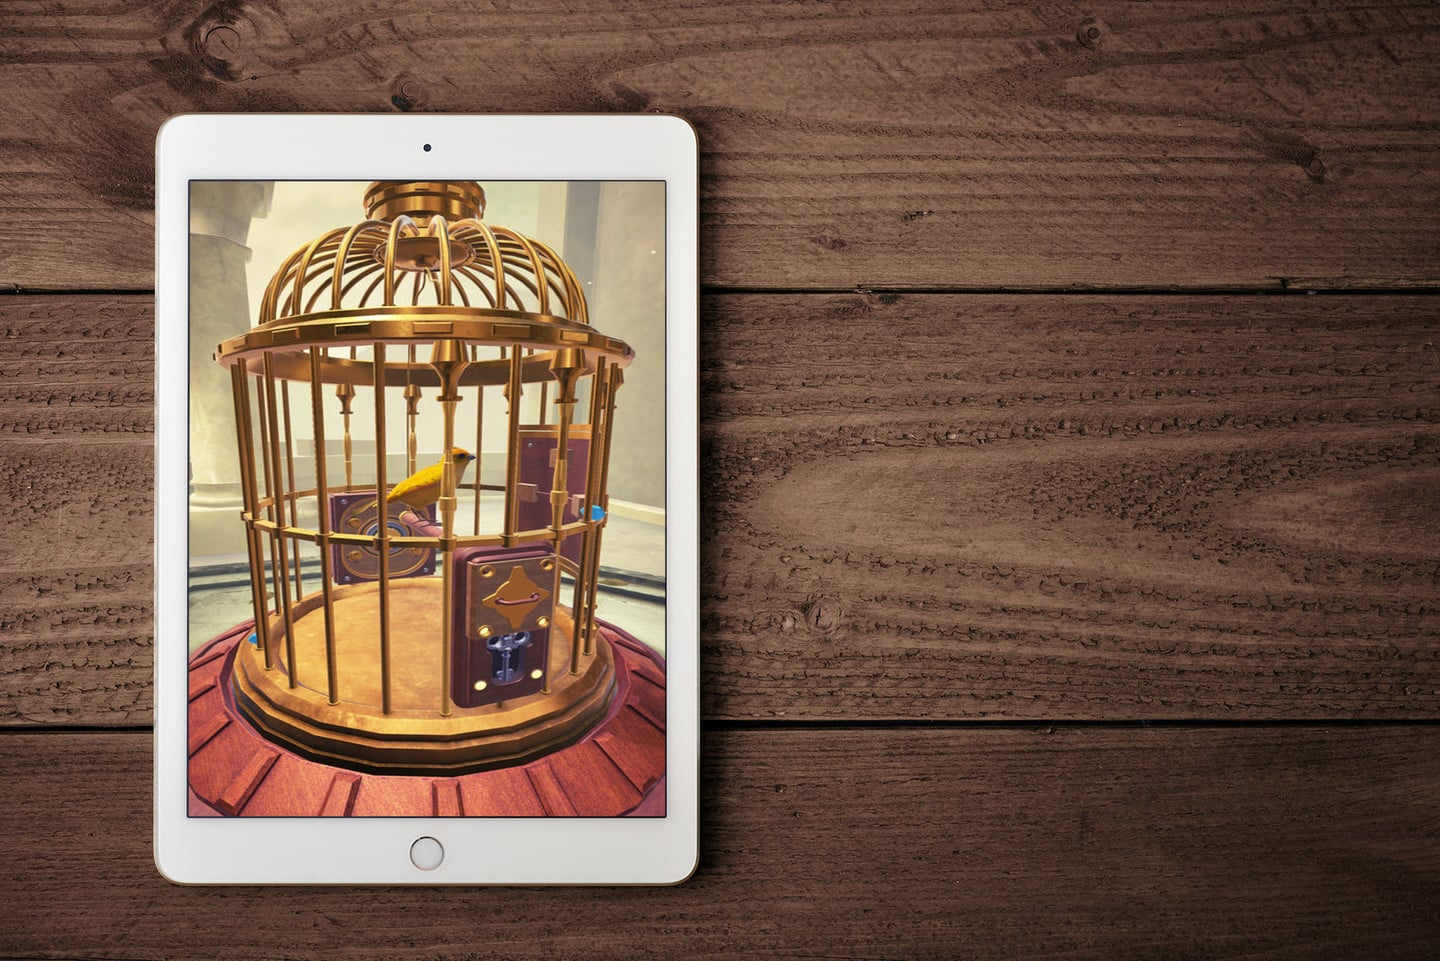 The Birdcage is a Beautiful Puzzler With Great Touch Controls, Unique AR Mode